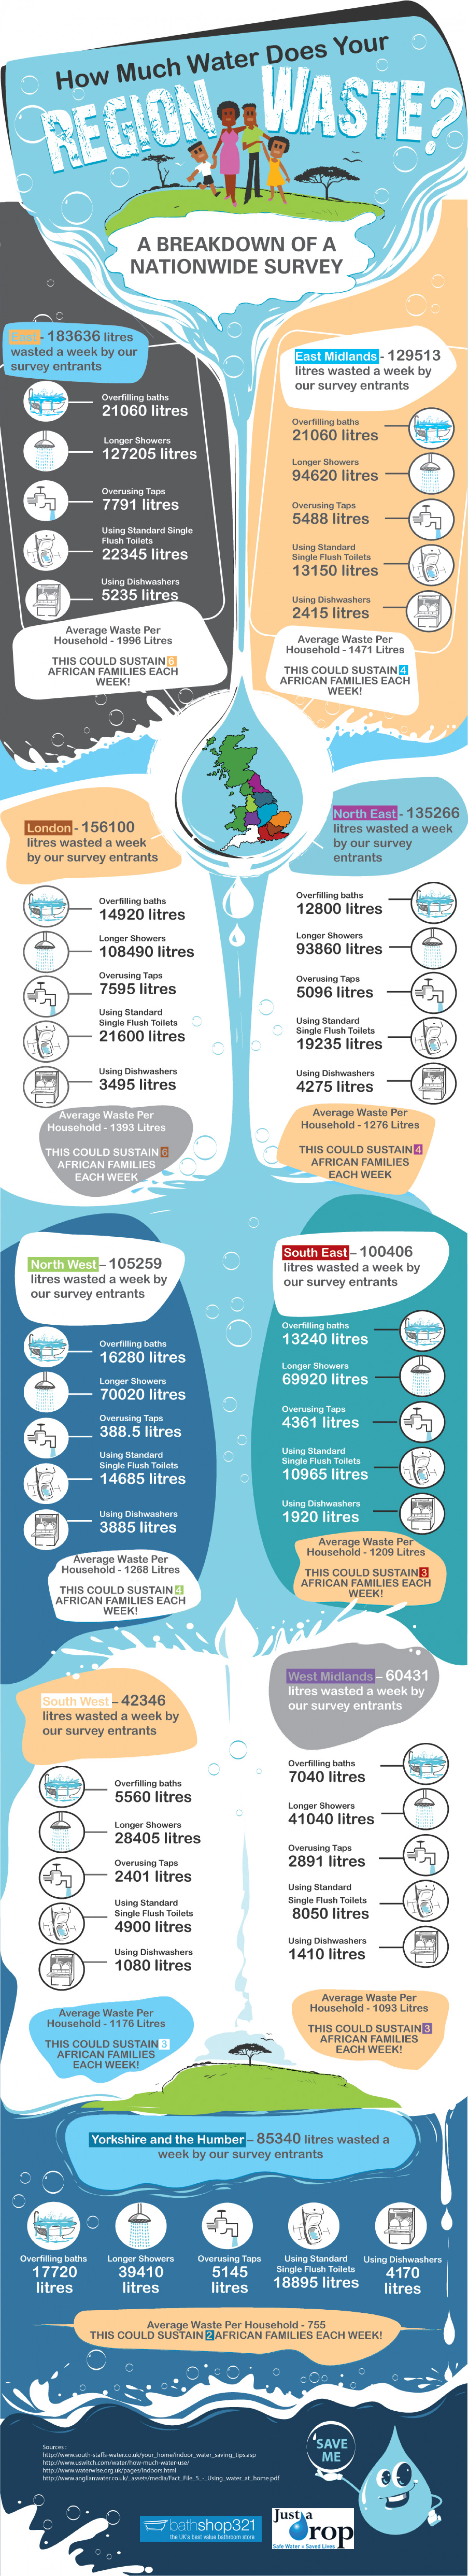 How Much Water Does Your Region Waste? Infographic